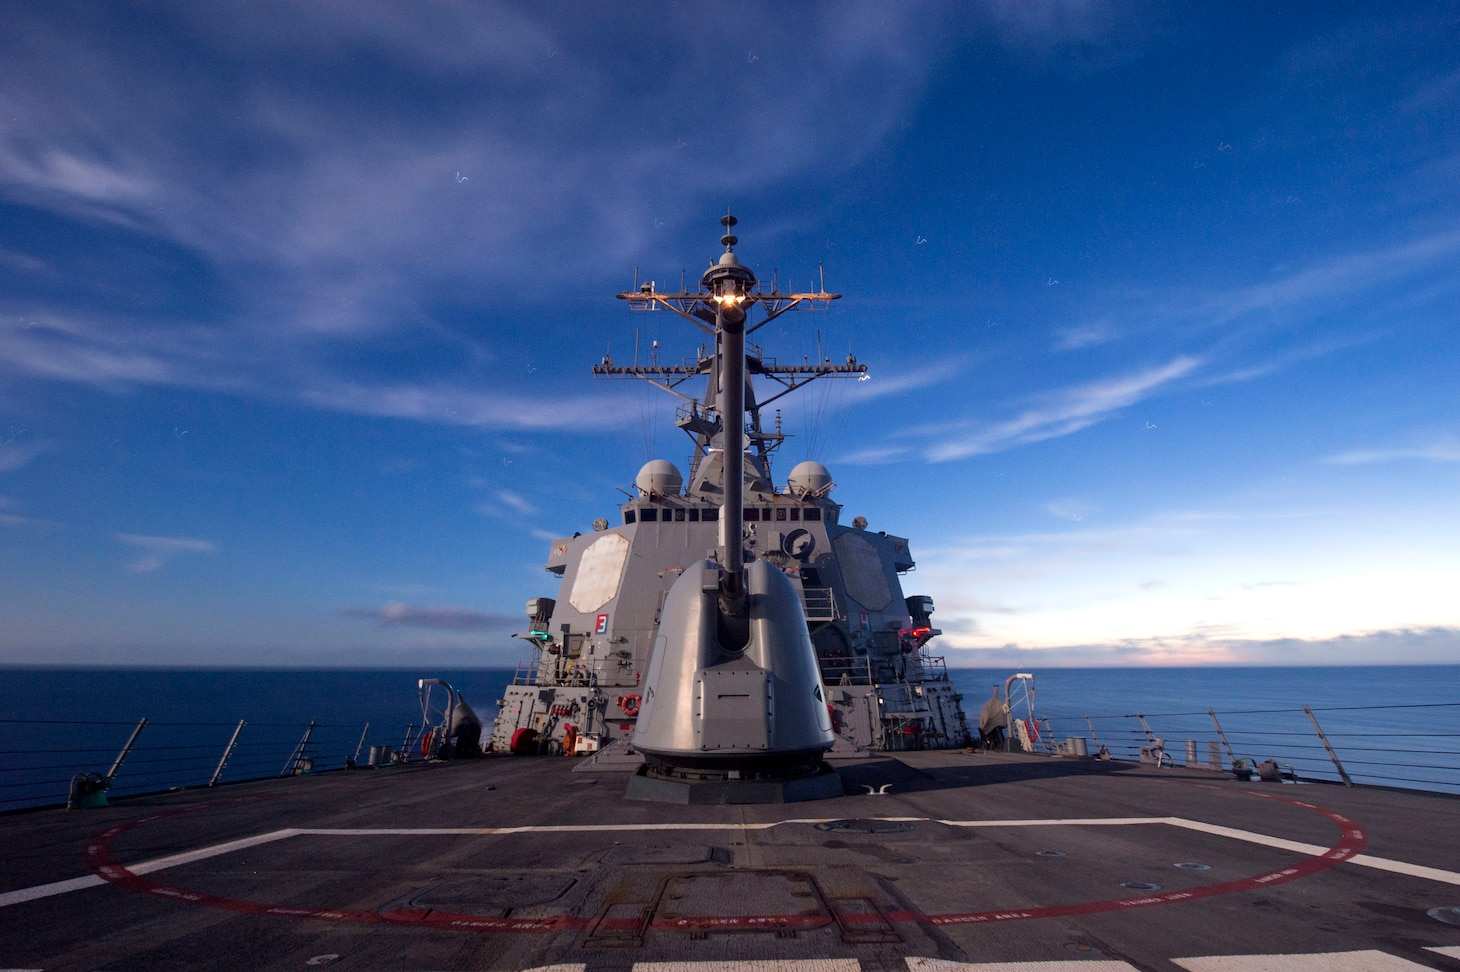 Guided-missile destroyer USS Cole (DDG 67) is underway conducting routine training and operations in preparation for an upcoming deployment with the George H.W. Bush Strike Group.